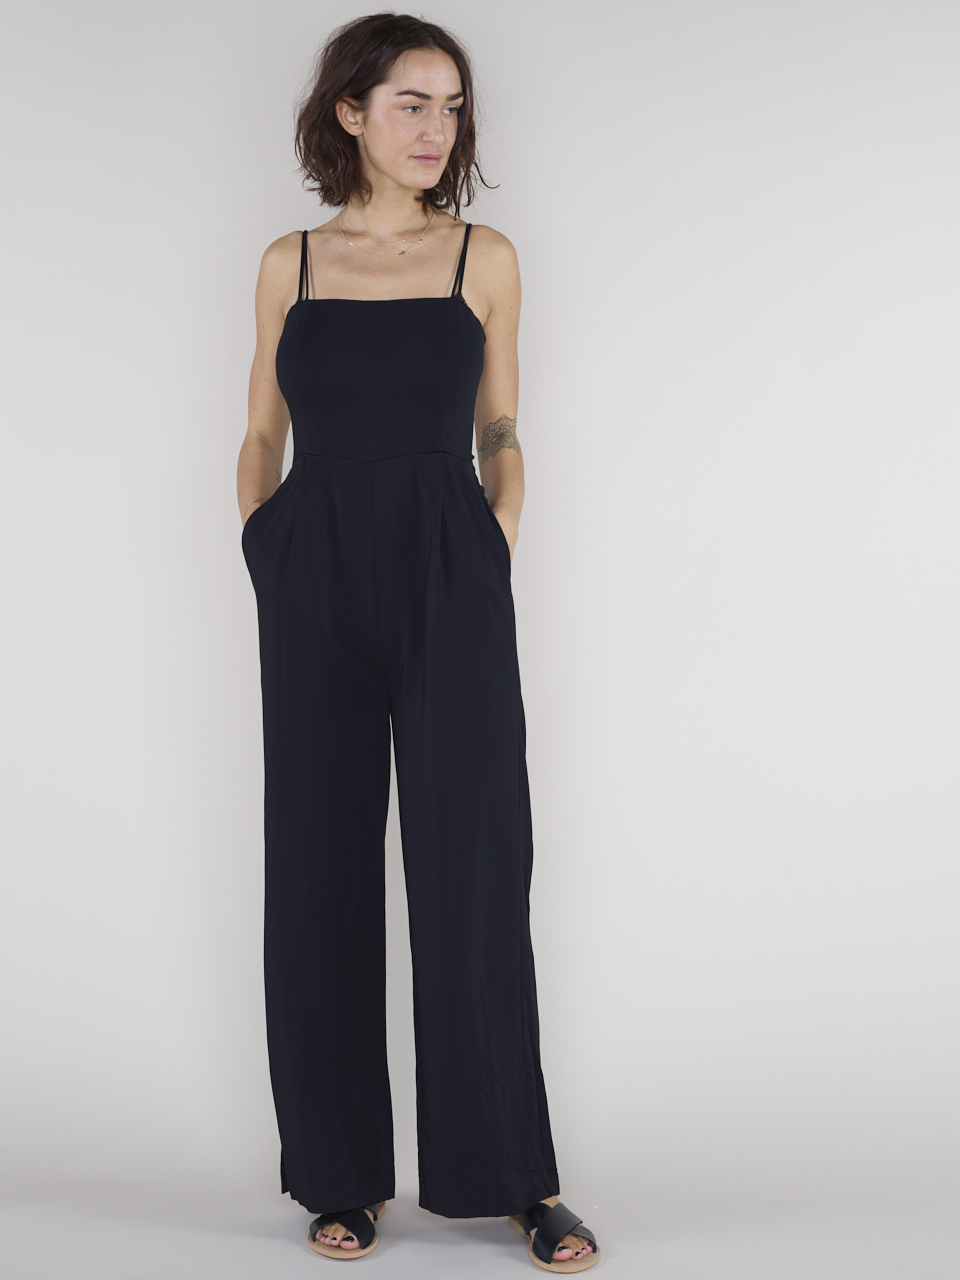 JUMPSUIT KOURTNEY 6460